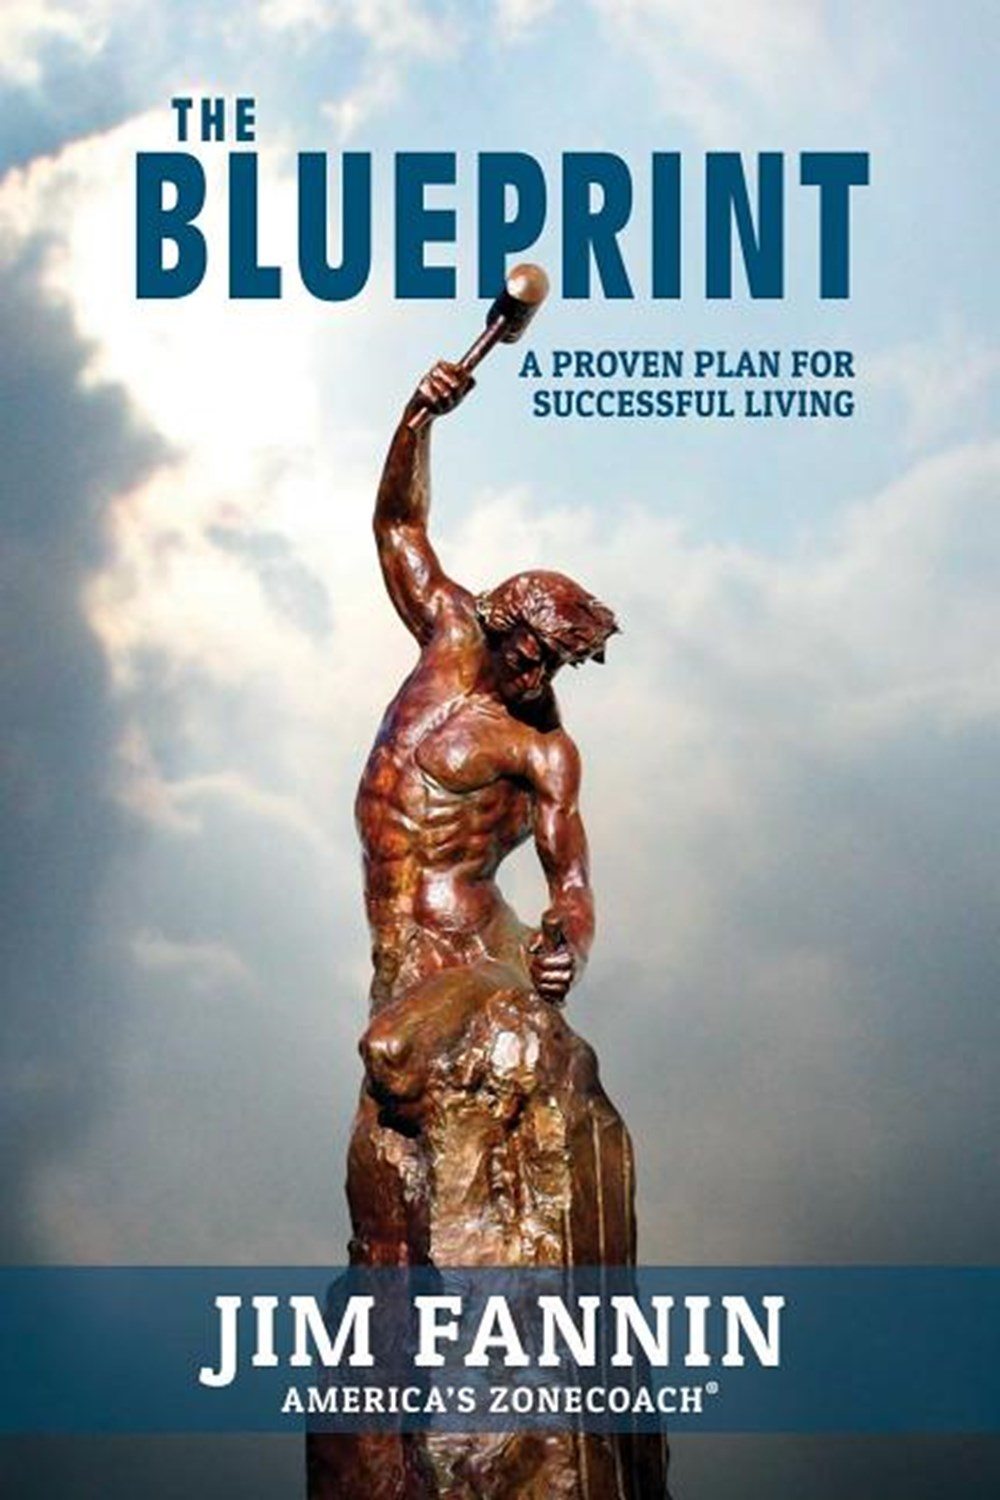 Blueprint A Proven Plan for Successful Living